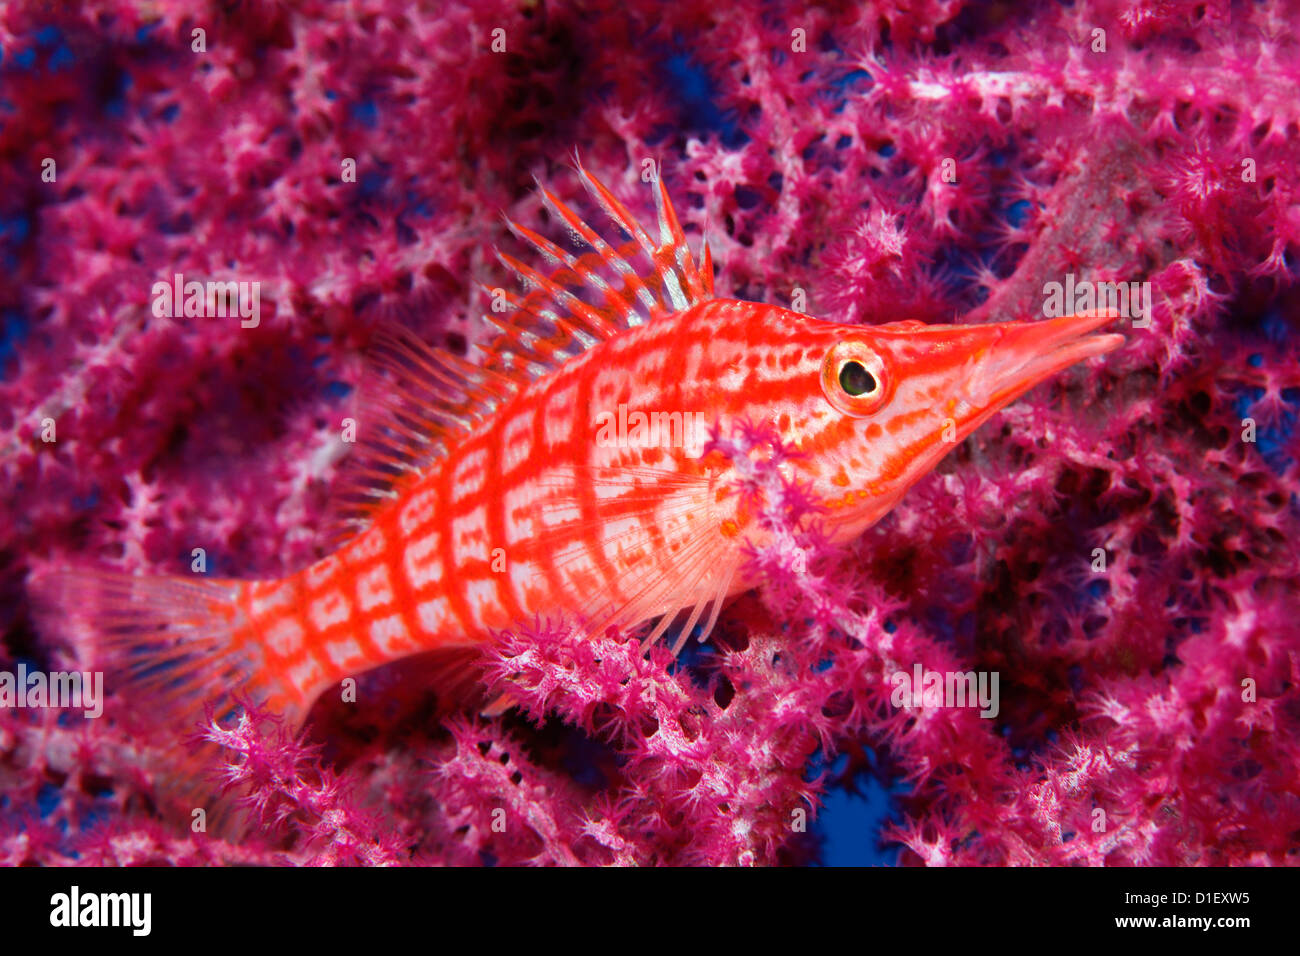 Longnose Hawkfish (Oxycirrhites typus) on coral near Tulamben, Bali, Indonesia, Pacific Ocean, underwater shot - Stock Image